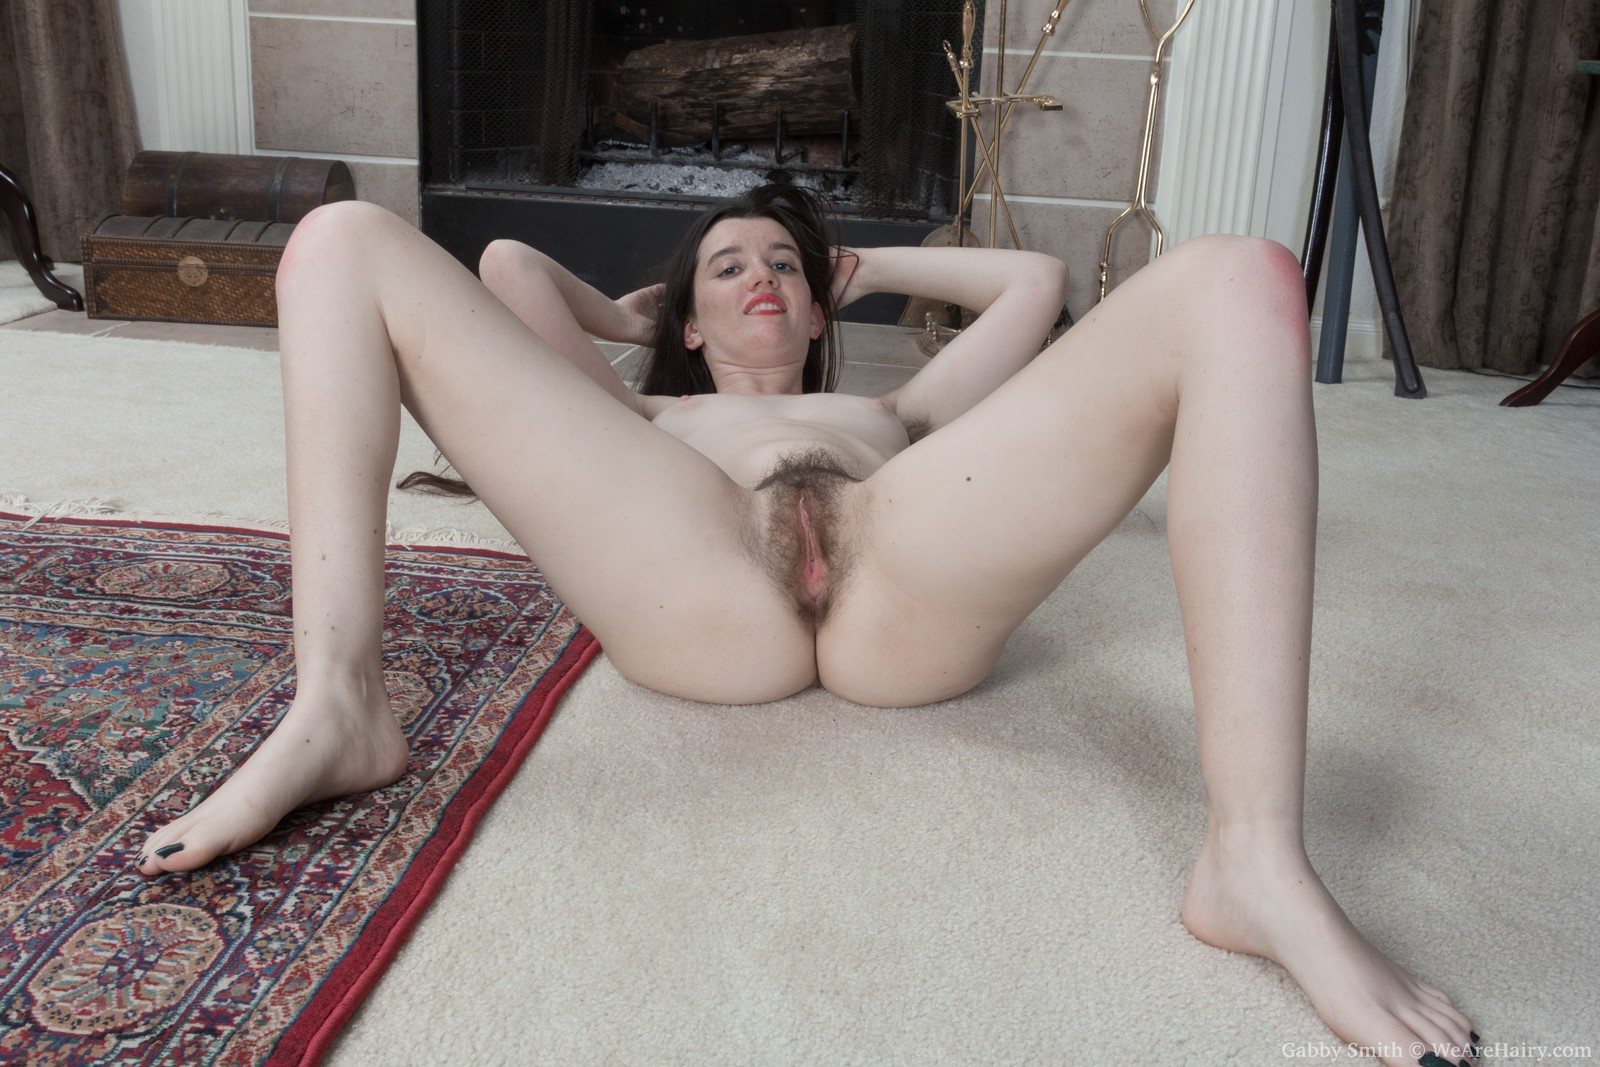 gabby-smith-strips-nude-by-her-fireplace12.jpg